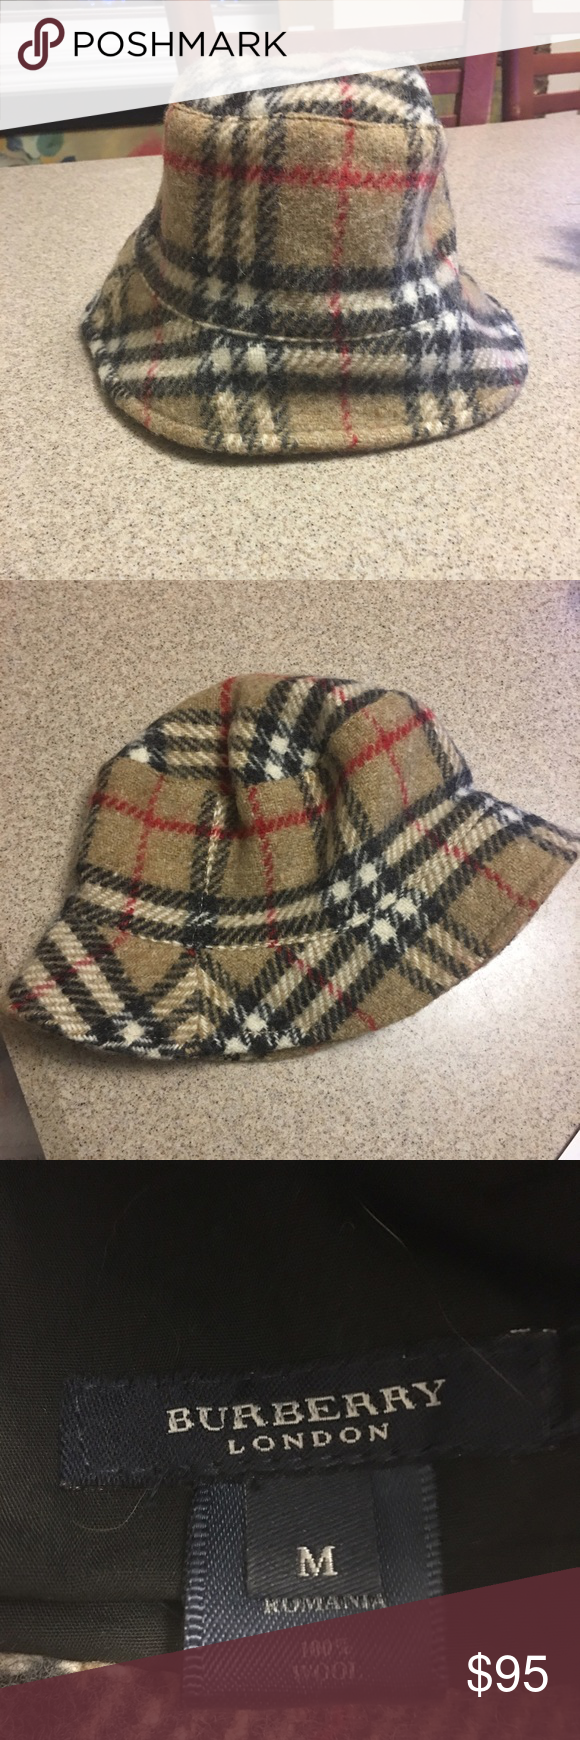 2dcda0a2b728d4 Burberry Bucket Hat Authentic 100% wool AUTHENTIC Burberry! This hat is a  must have to get through the winter. Like new condition. Burberry  Accessories Hats